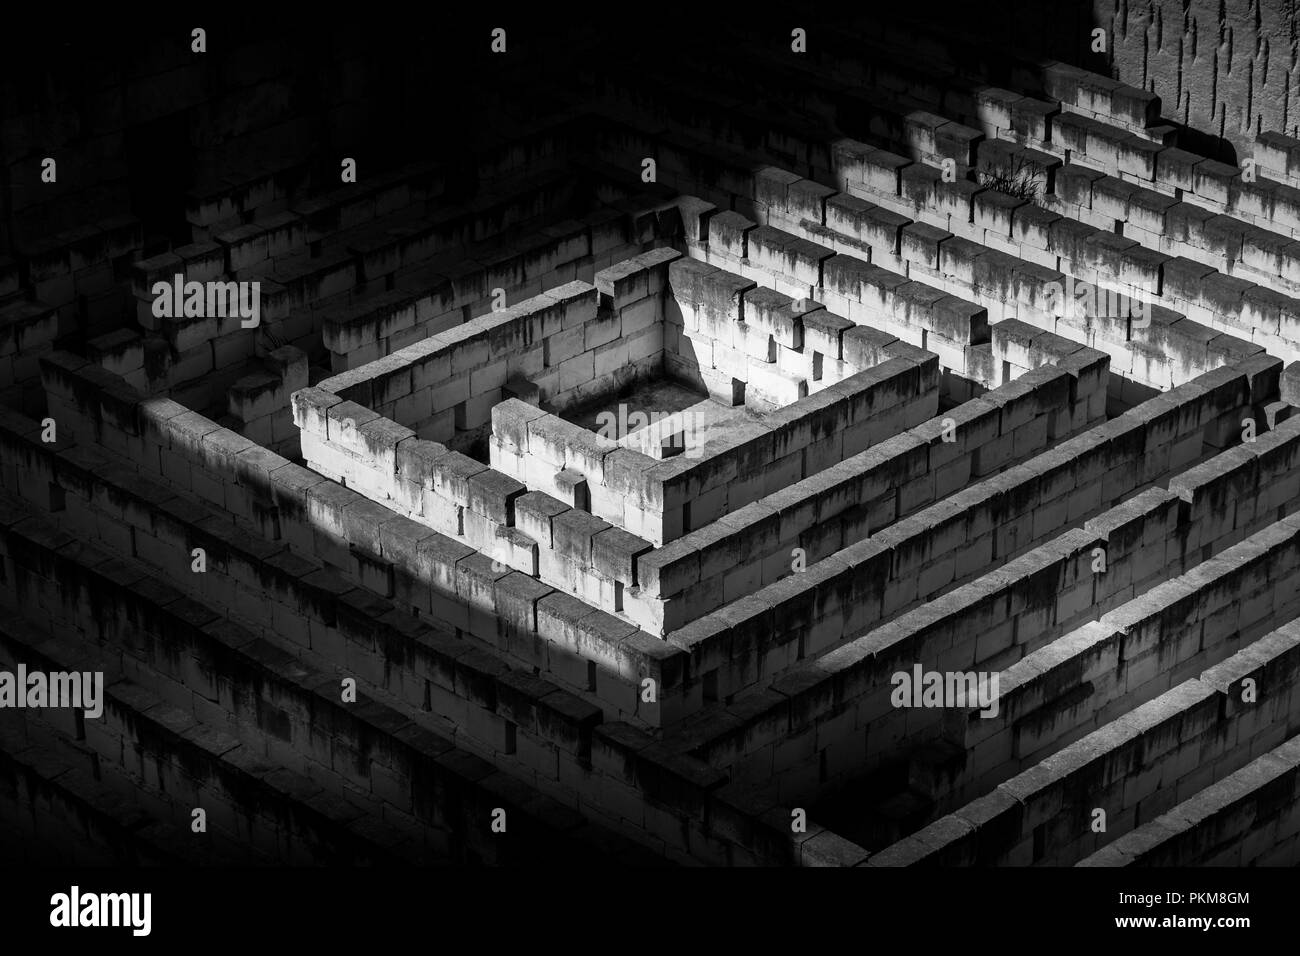 Labyrinth made of stone: conceptual for question, freedom and journey - Stock Image